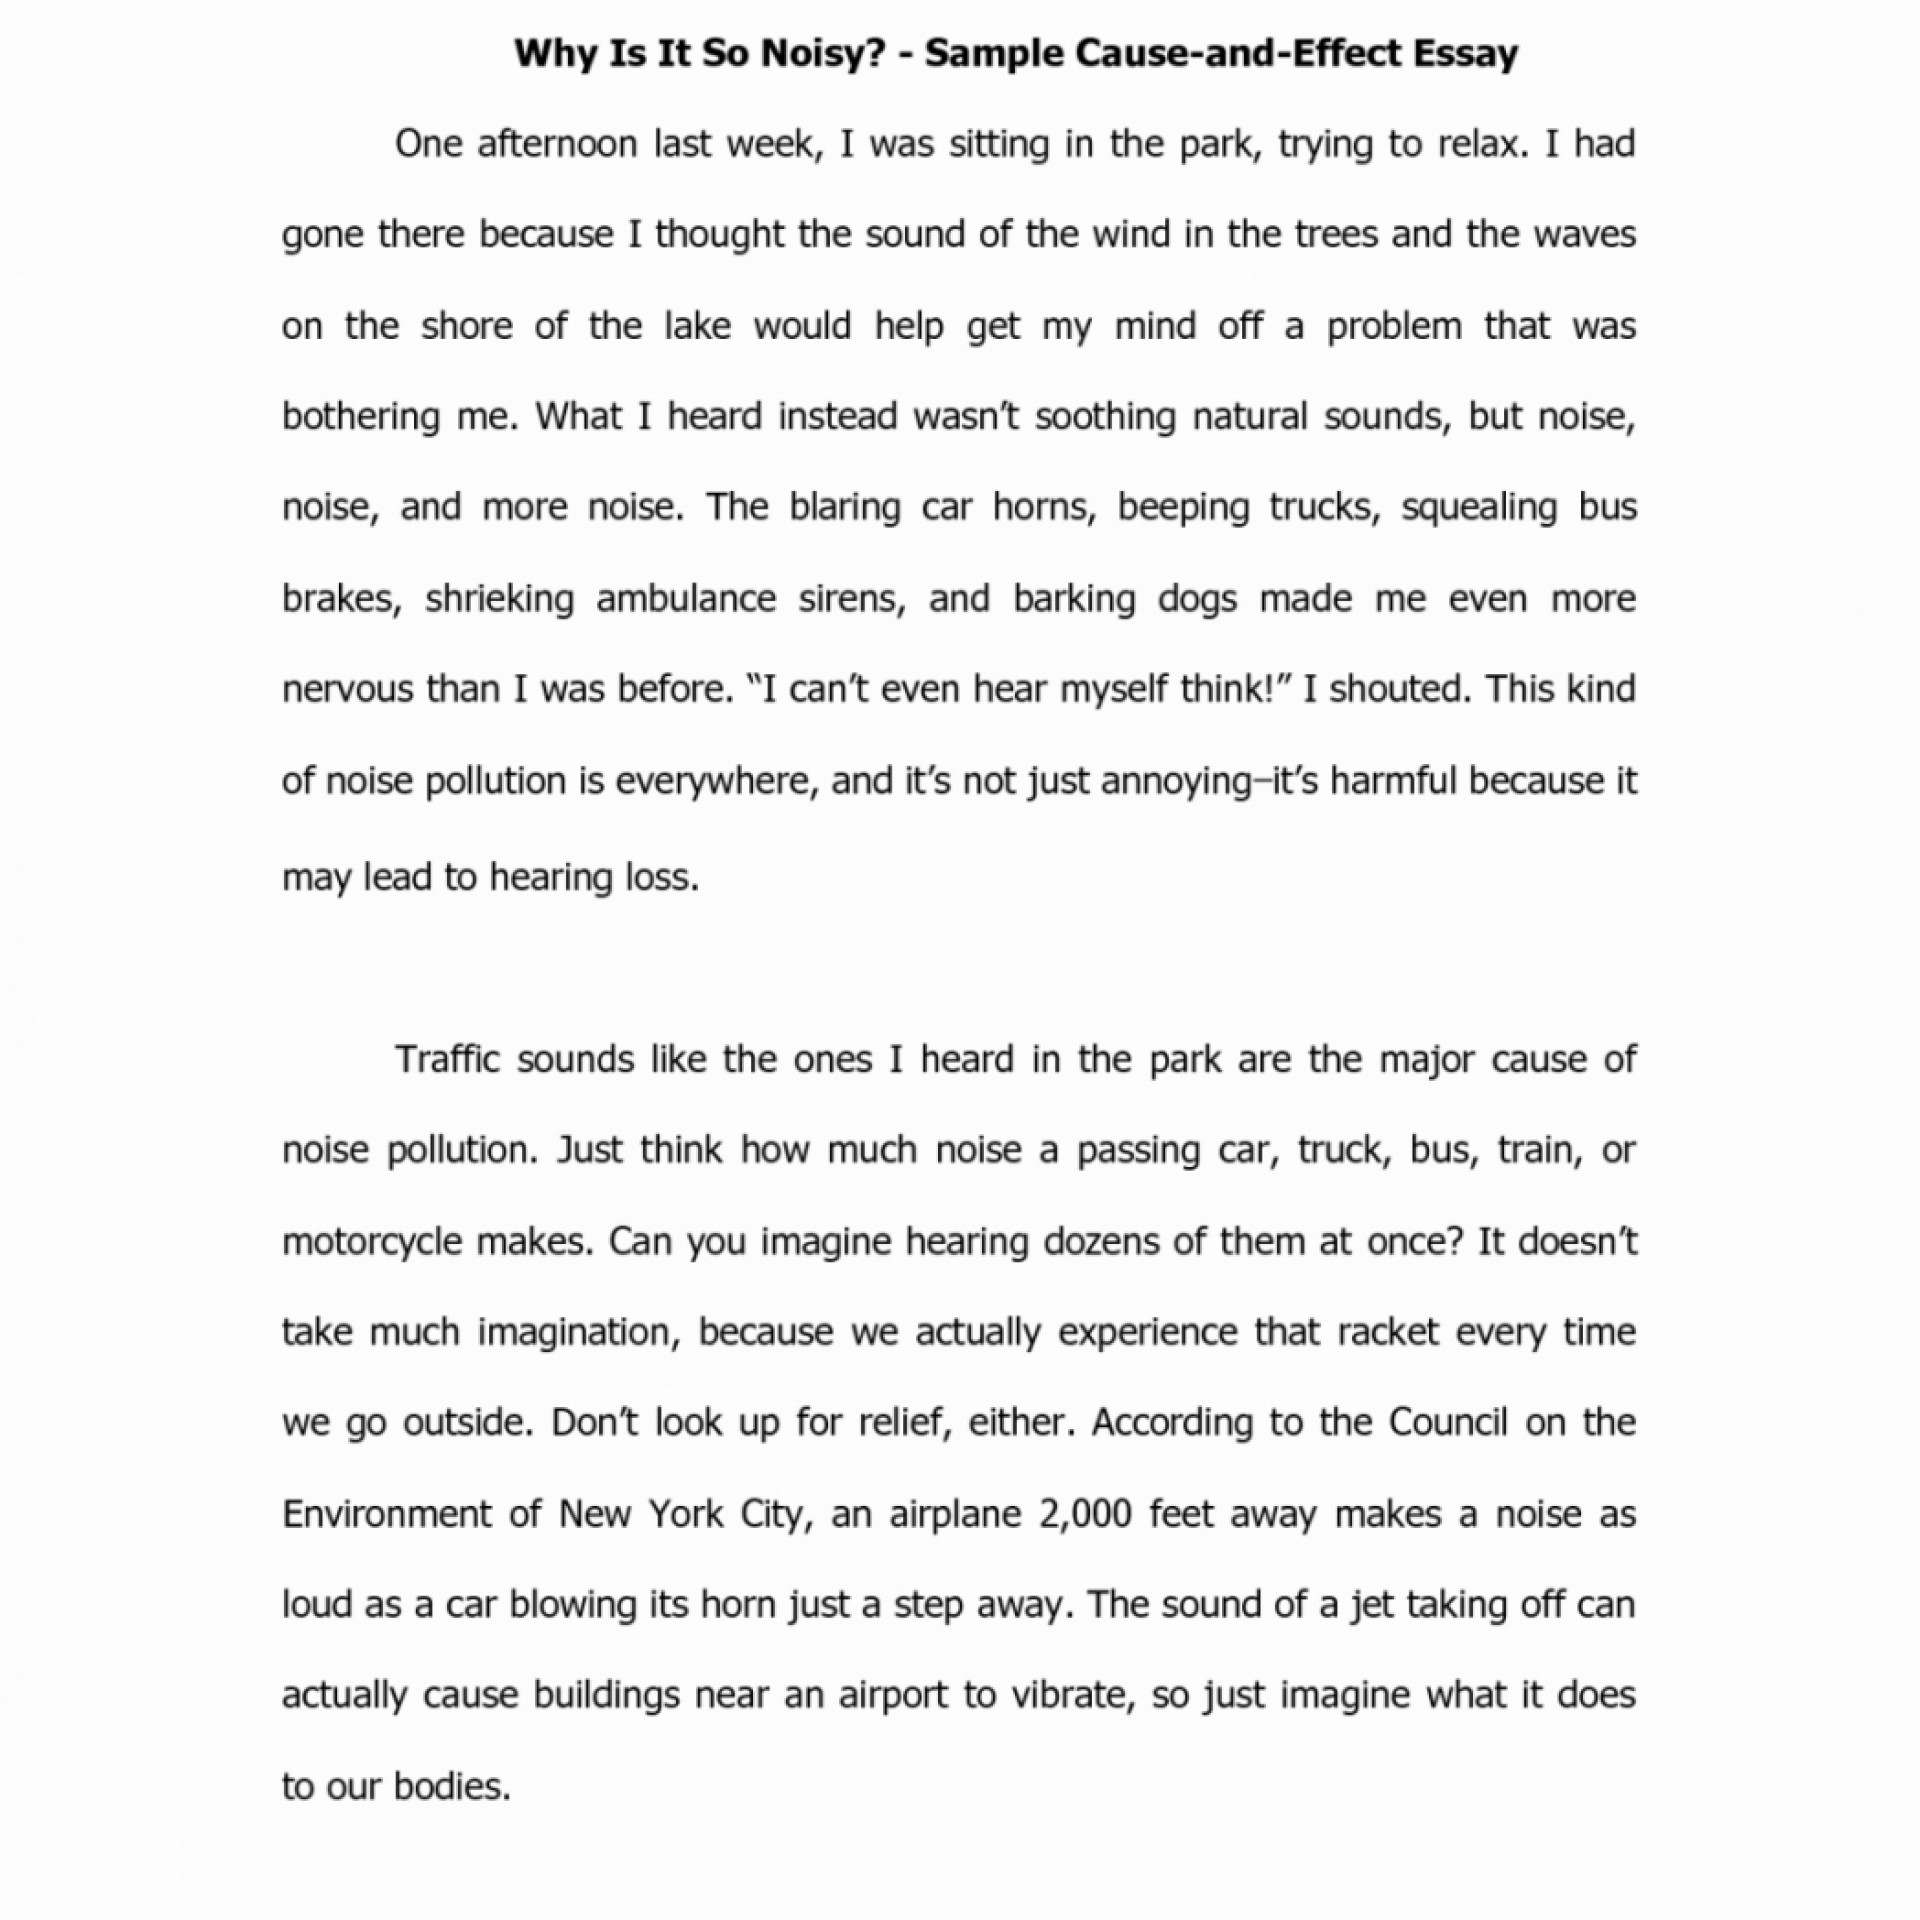 007 Cause Effect Essay Format Best Of And Examples For Or Good Cover Bystander Domino Analysis Ielts Free 6th Grade Collegef Middle School 1048x1048 Example Sample Stunning Pdf Template Writing 1920